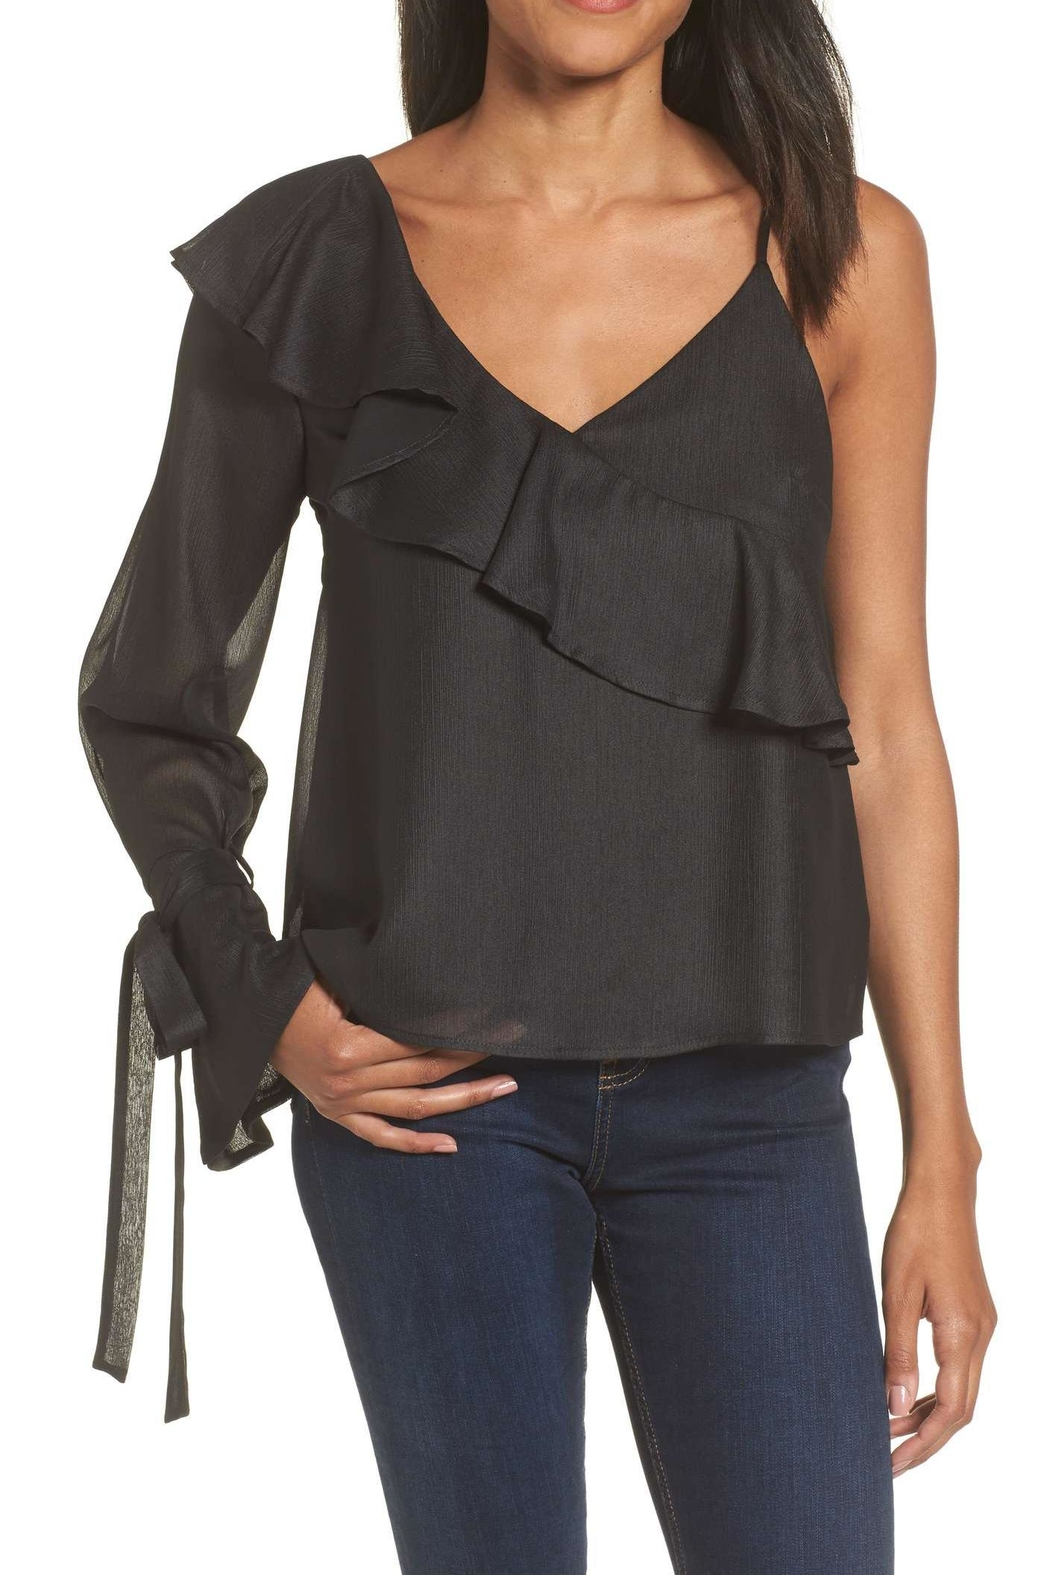 Lush Clothing  Asymmetrical Ruffle Blouse - Main Image